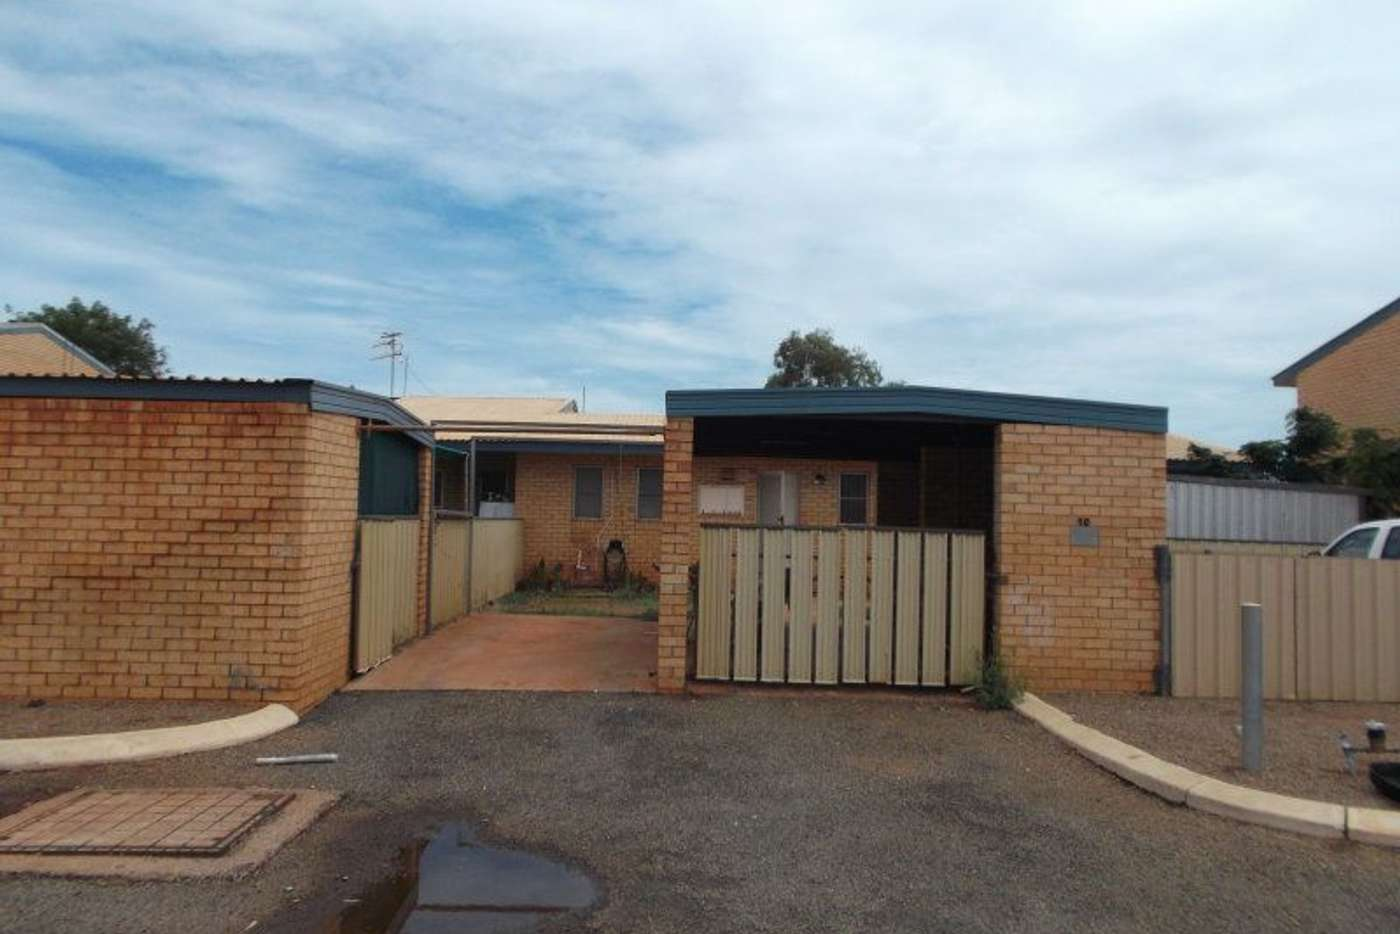 Main view of Homely house listing, 10 Cowrie Way, South Hedland WA 6722